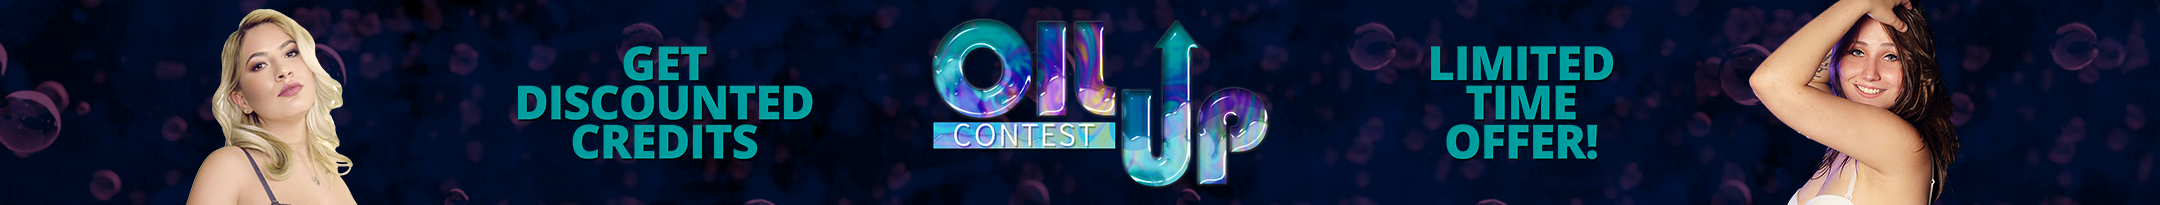 Oil Up Discount Promo